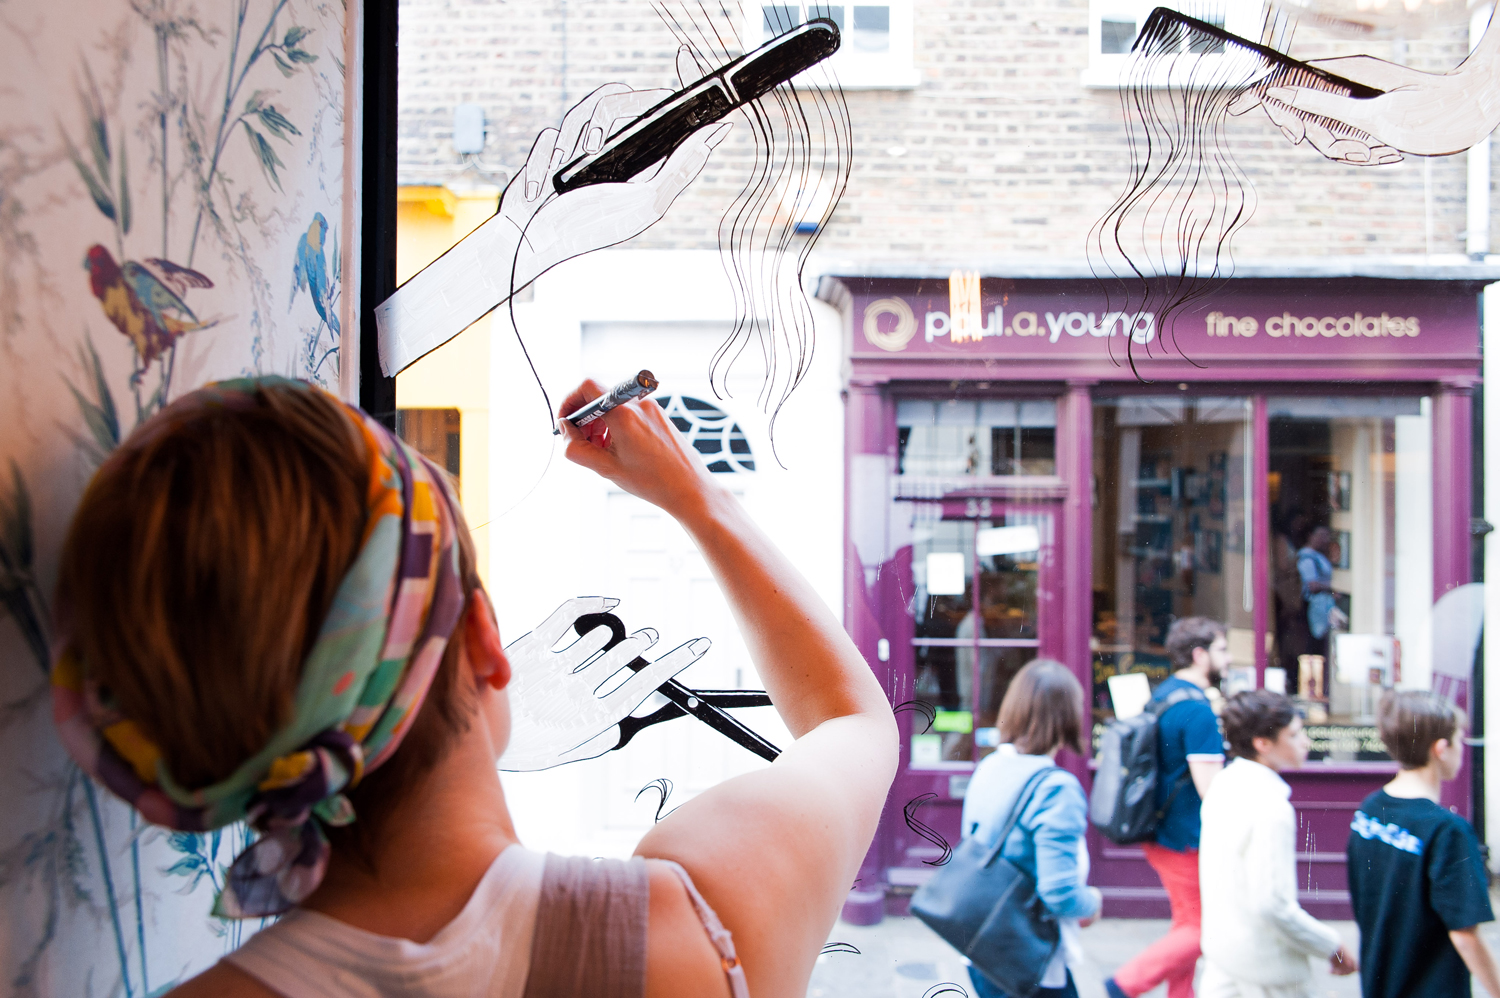 Live painting, illustrated windows and window displays